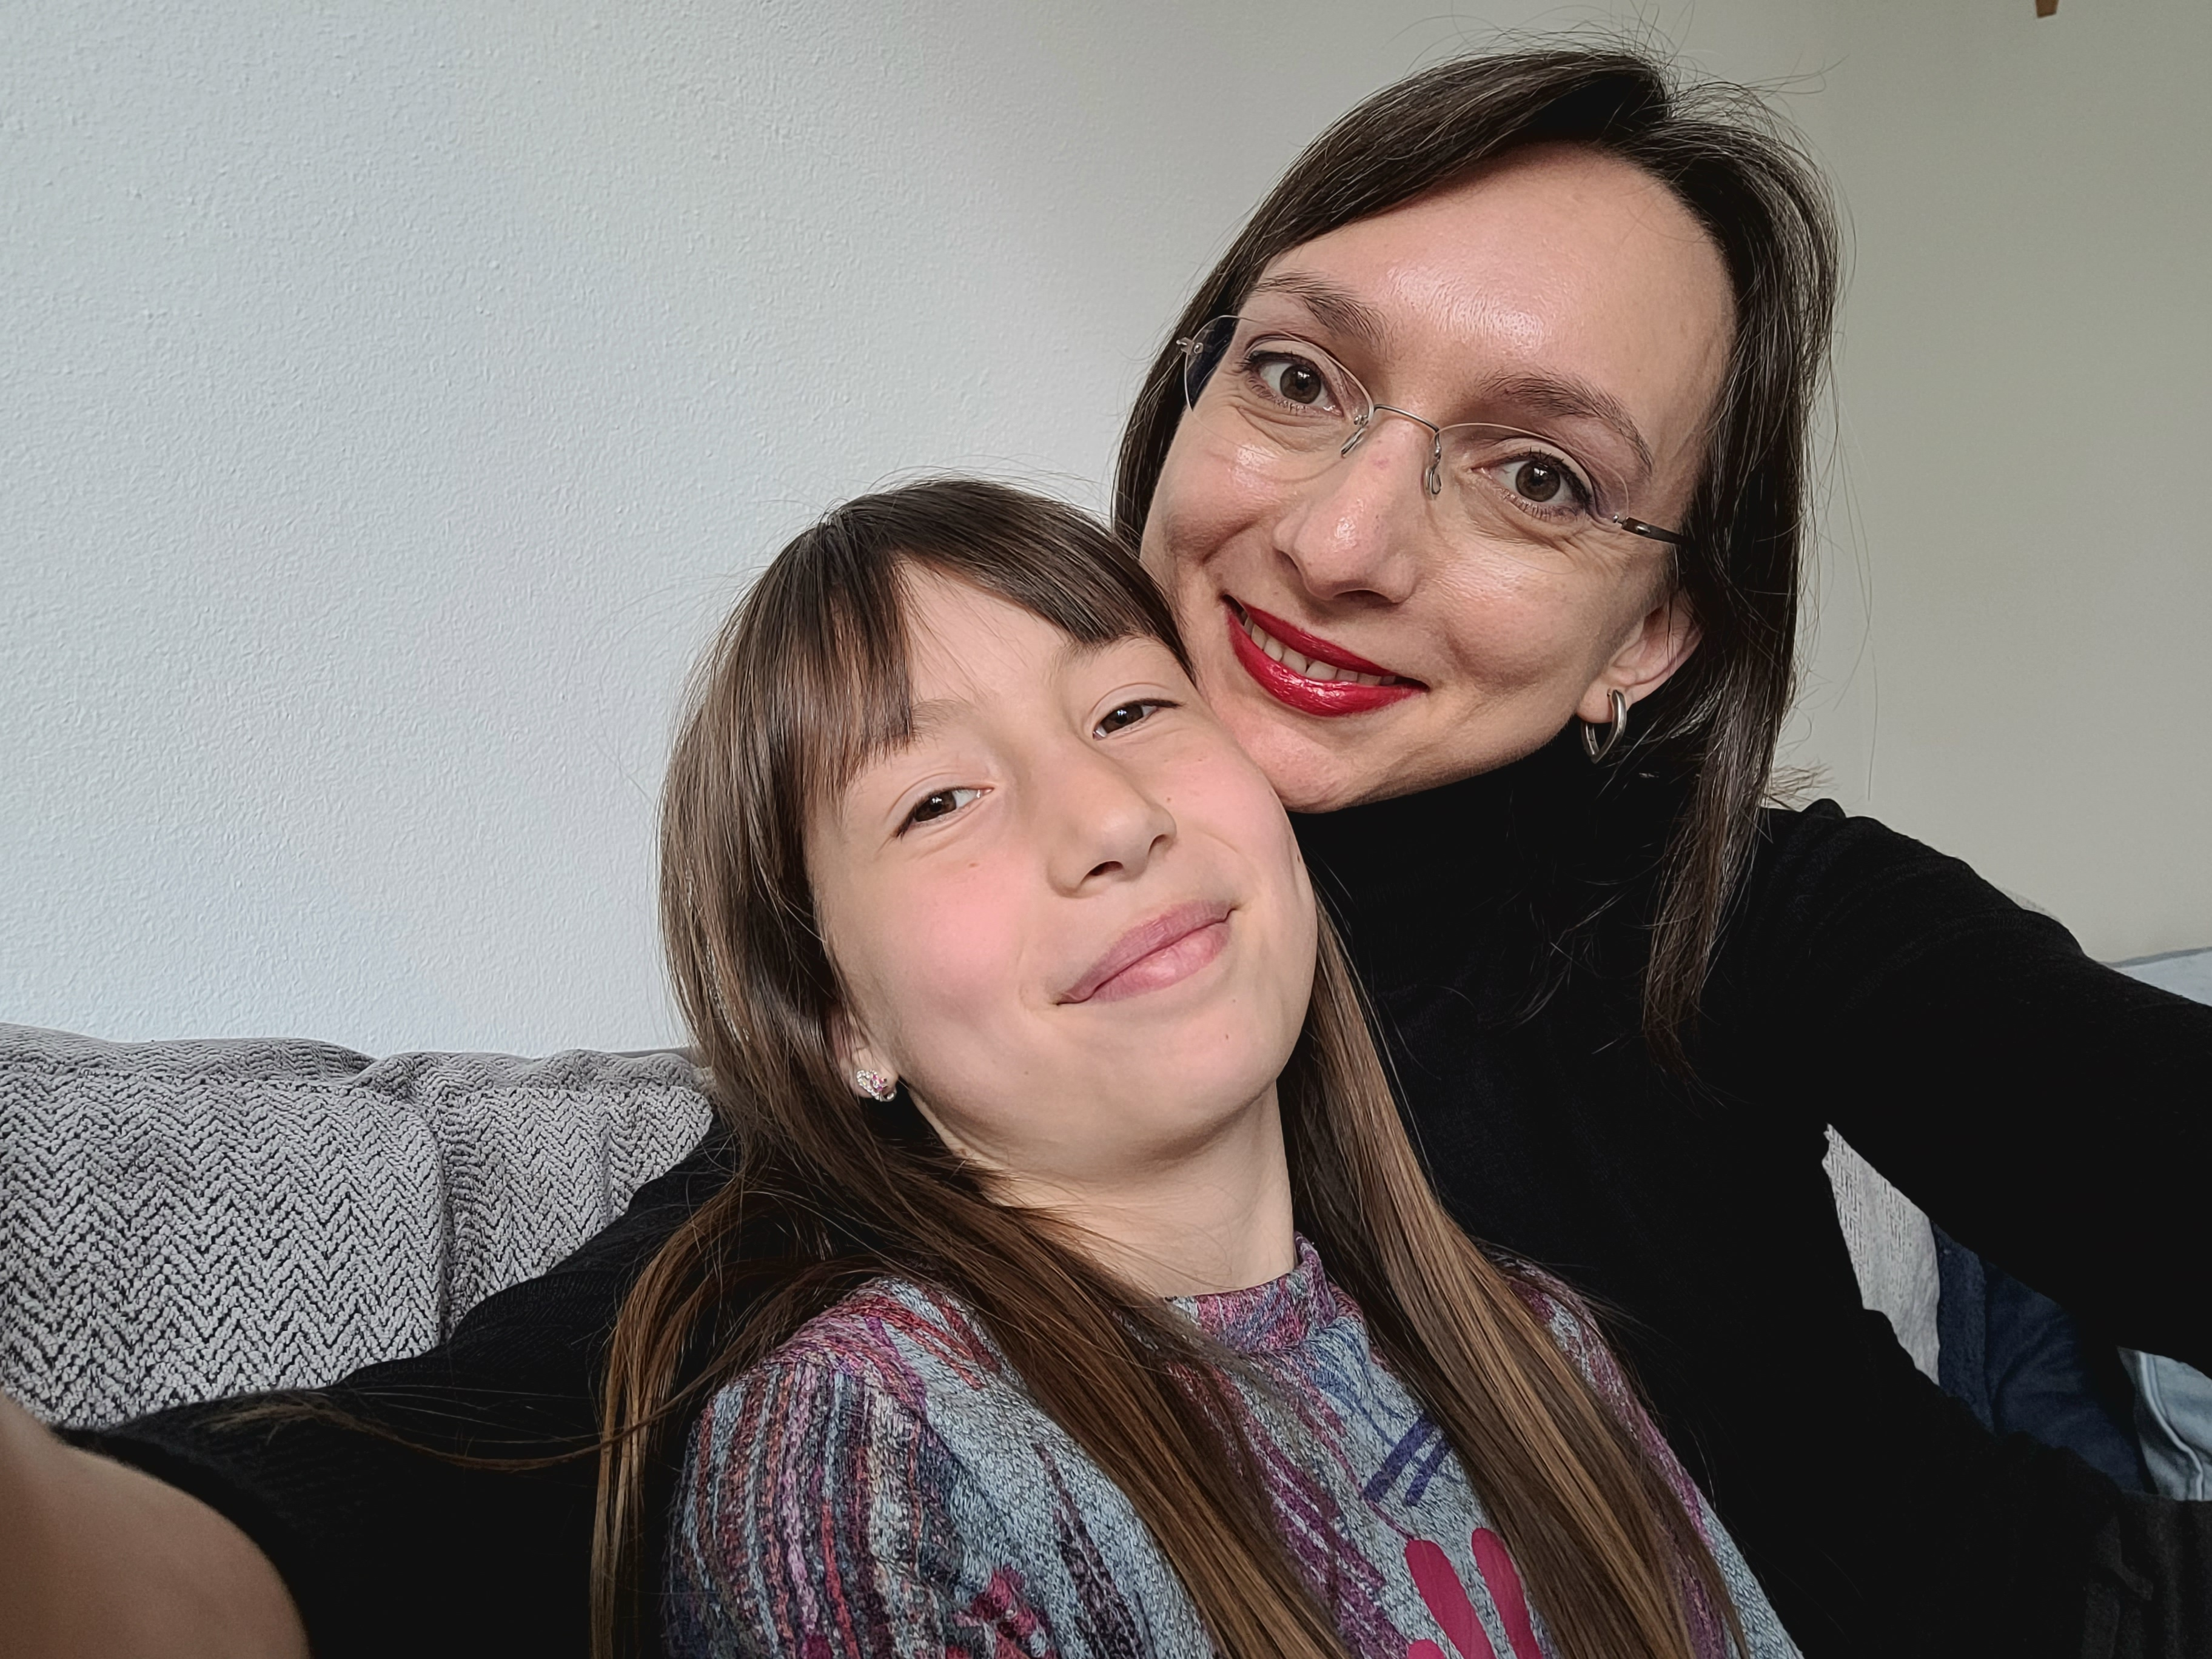 My sexual abuse story, my daughter, and red lipstick